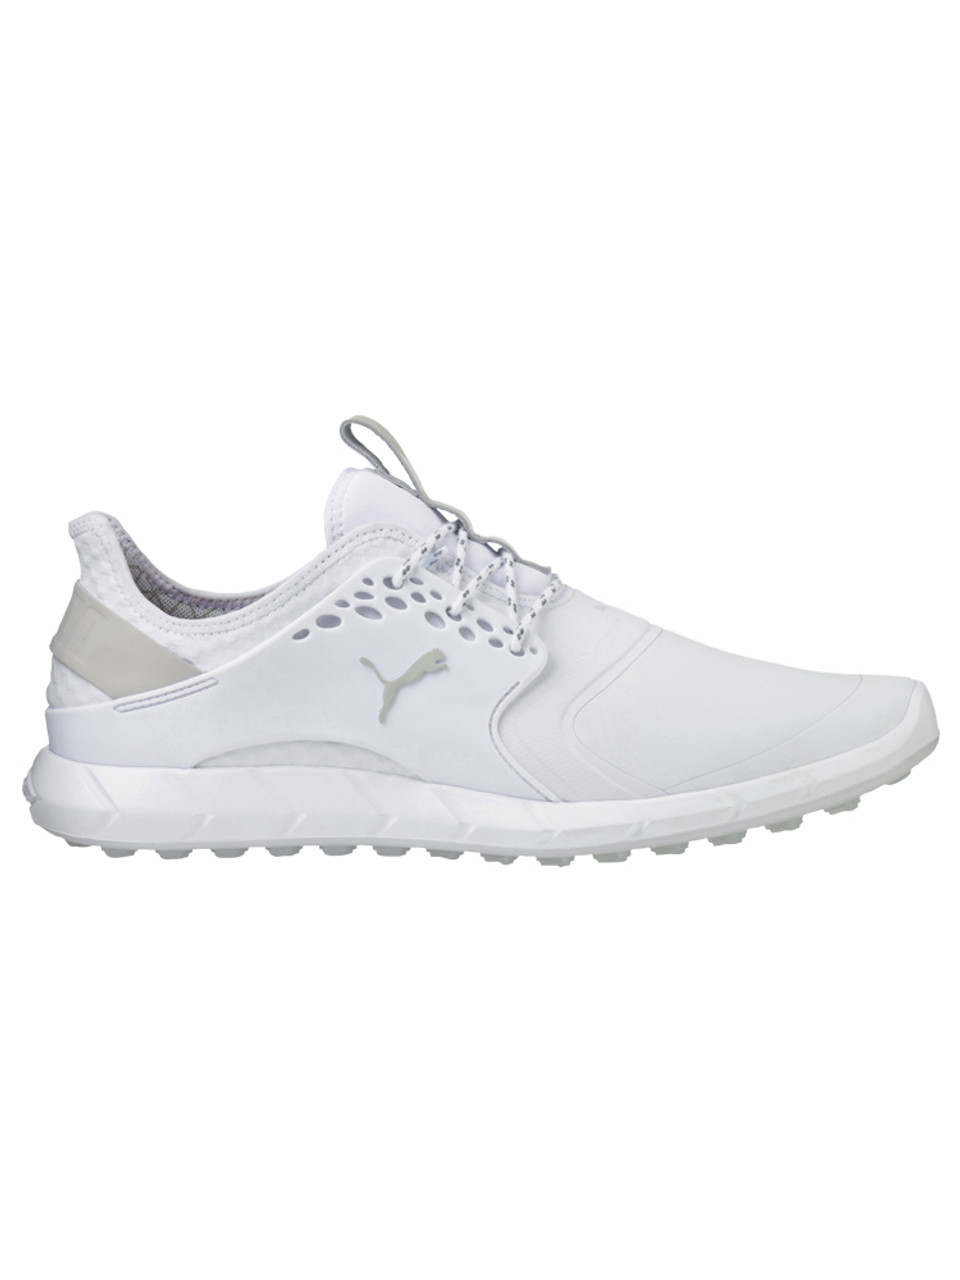 Puma Ignite PWRsport Pro Shoes - Puma White - Mens For Sale  fb80cdb4b